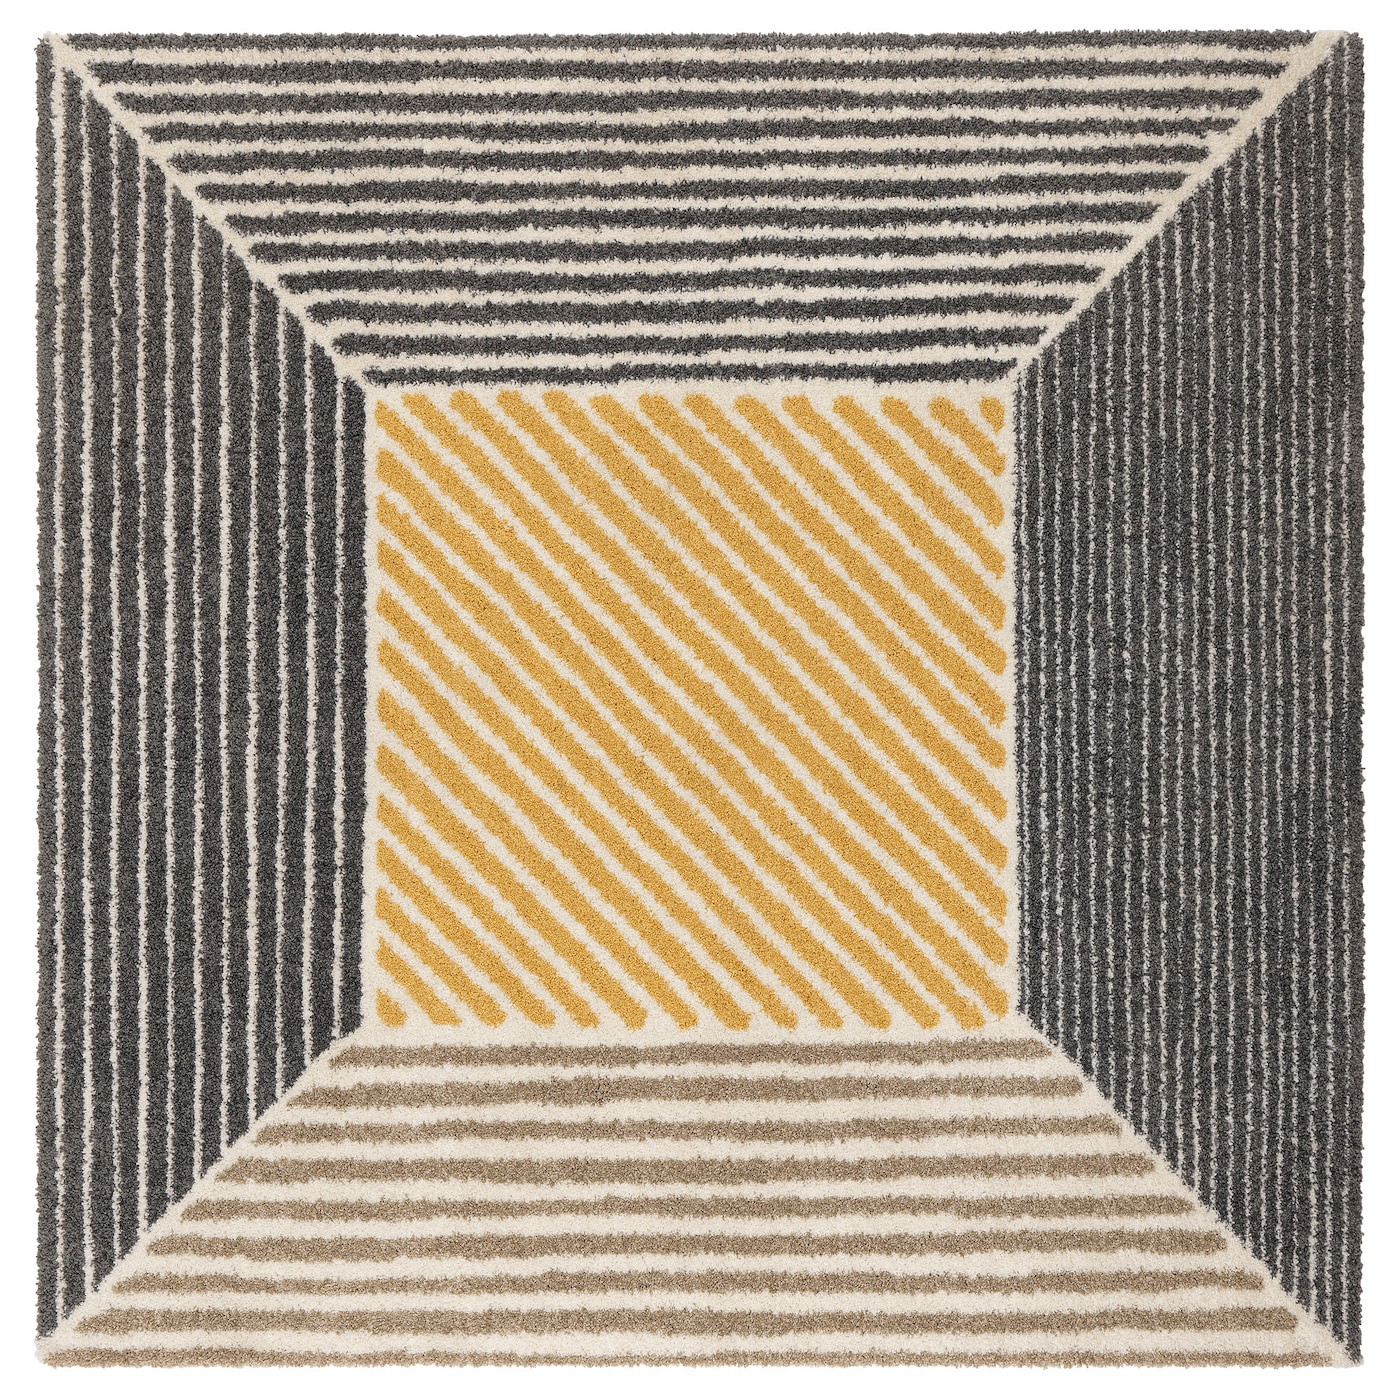 Birket Rug High Pile Yellow Grey 200x200 Cm Ikea